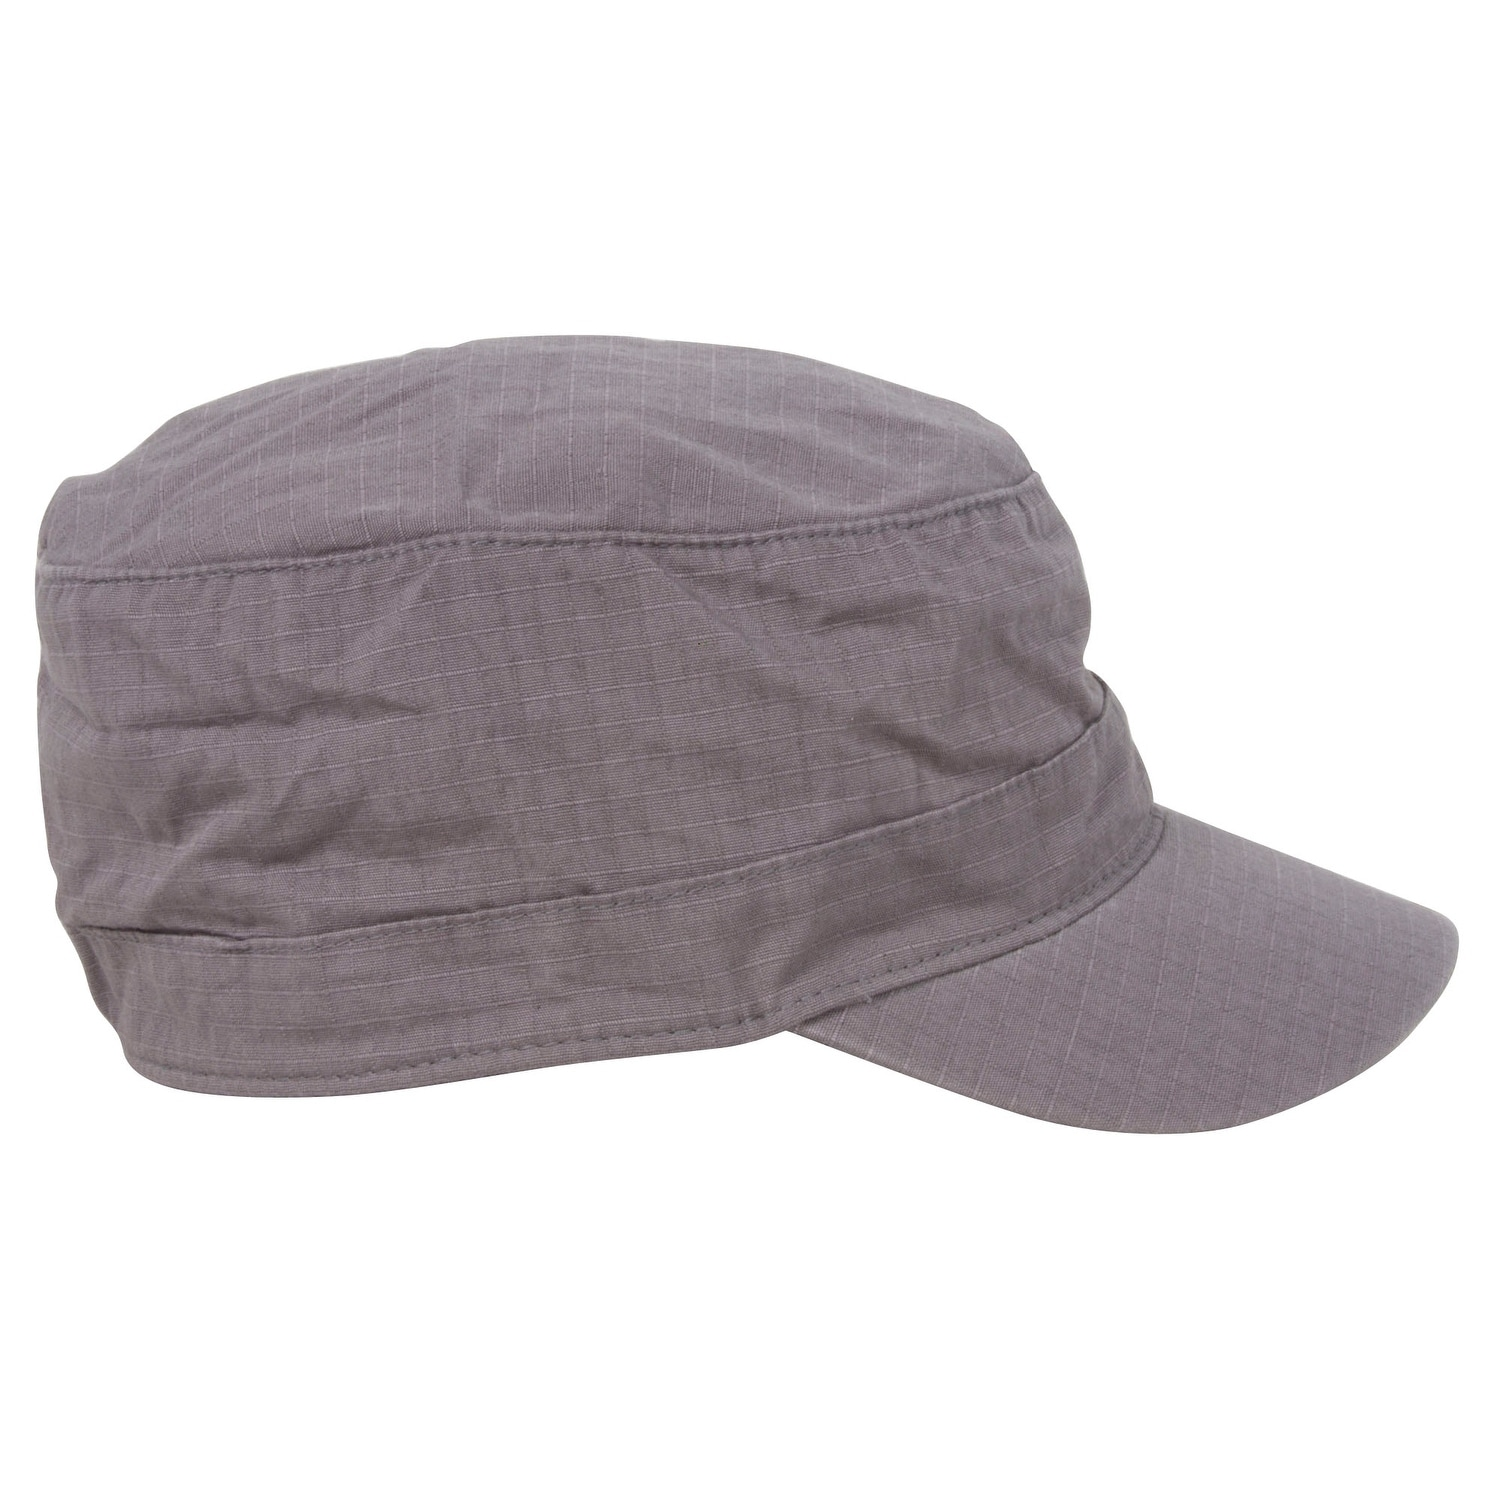 5a627e2f Shop Fitted Cotton Ripstop Army Cap-Charcoal - Free Shipping On Orders Over  $45 - Overstock - 20669433